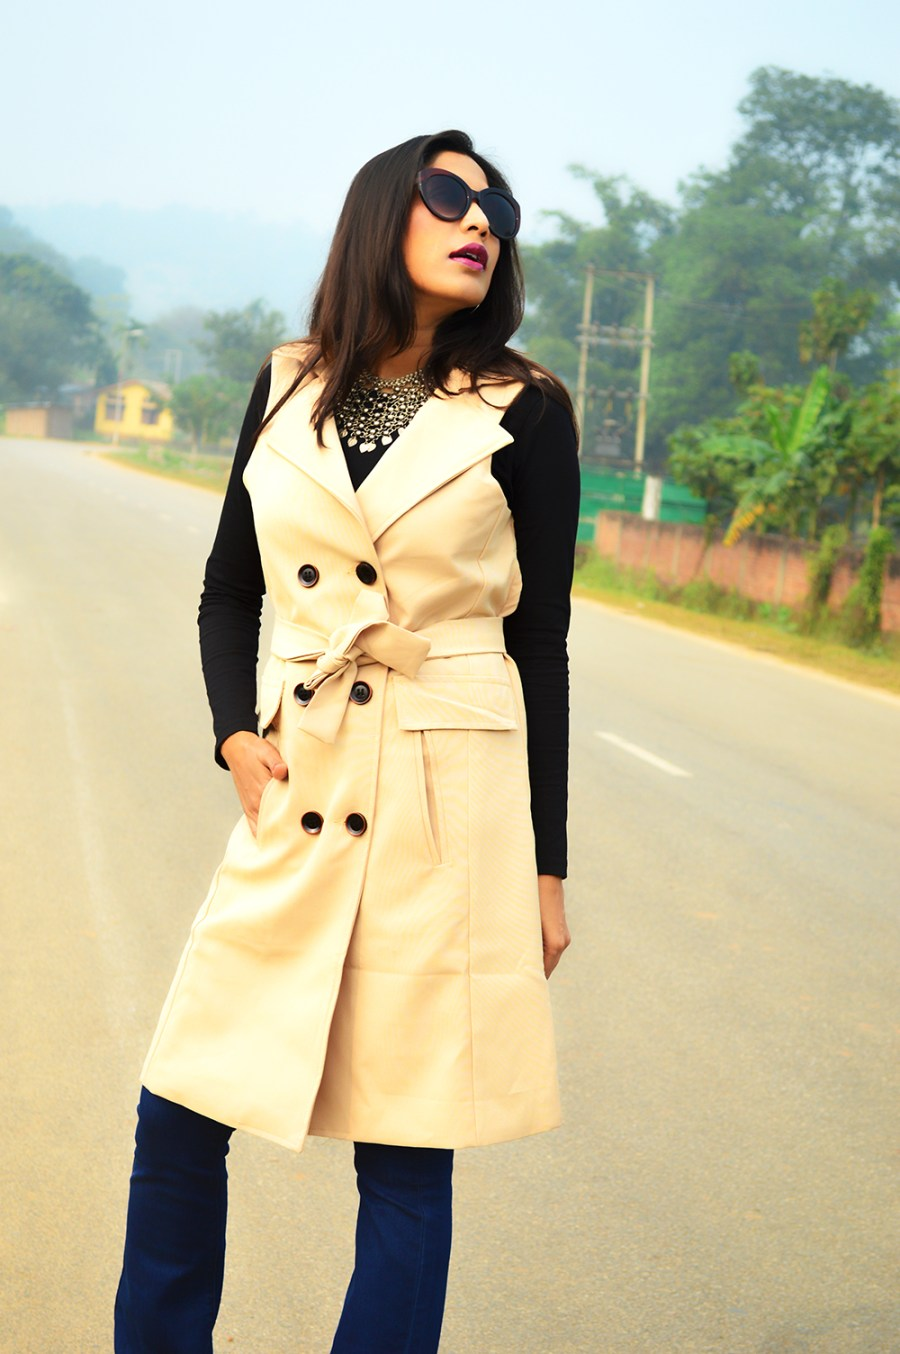 Sleeveless, Trench Coat, Bootcut Denims, Fashion, Style, Photography, Street Style, Indian Blogger, Fashion Blogger-4